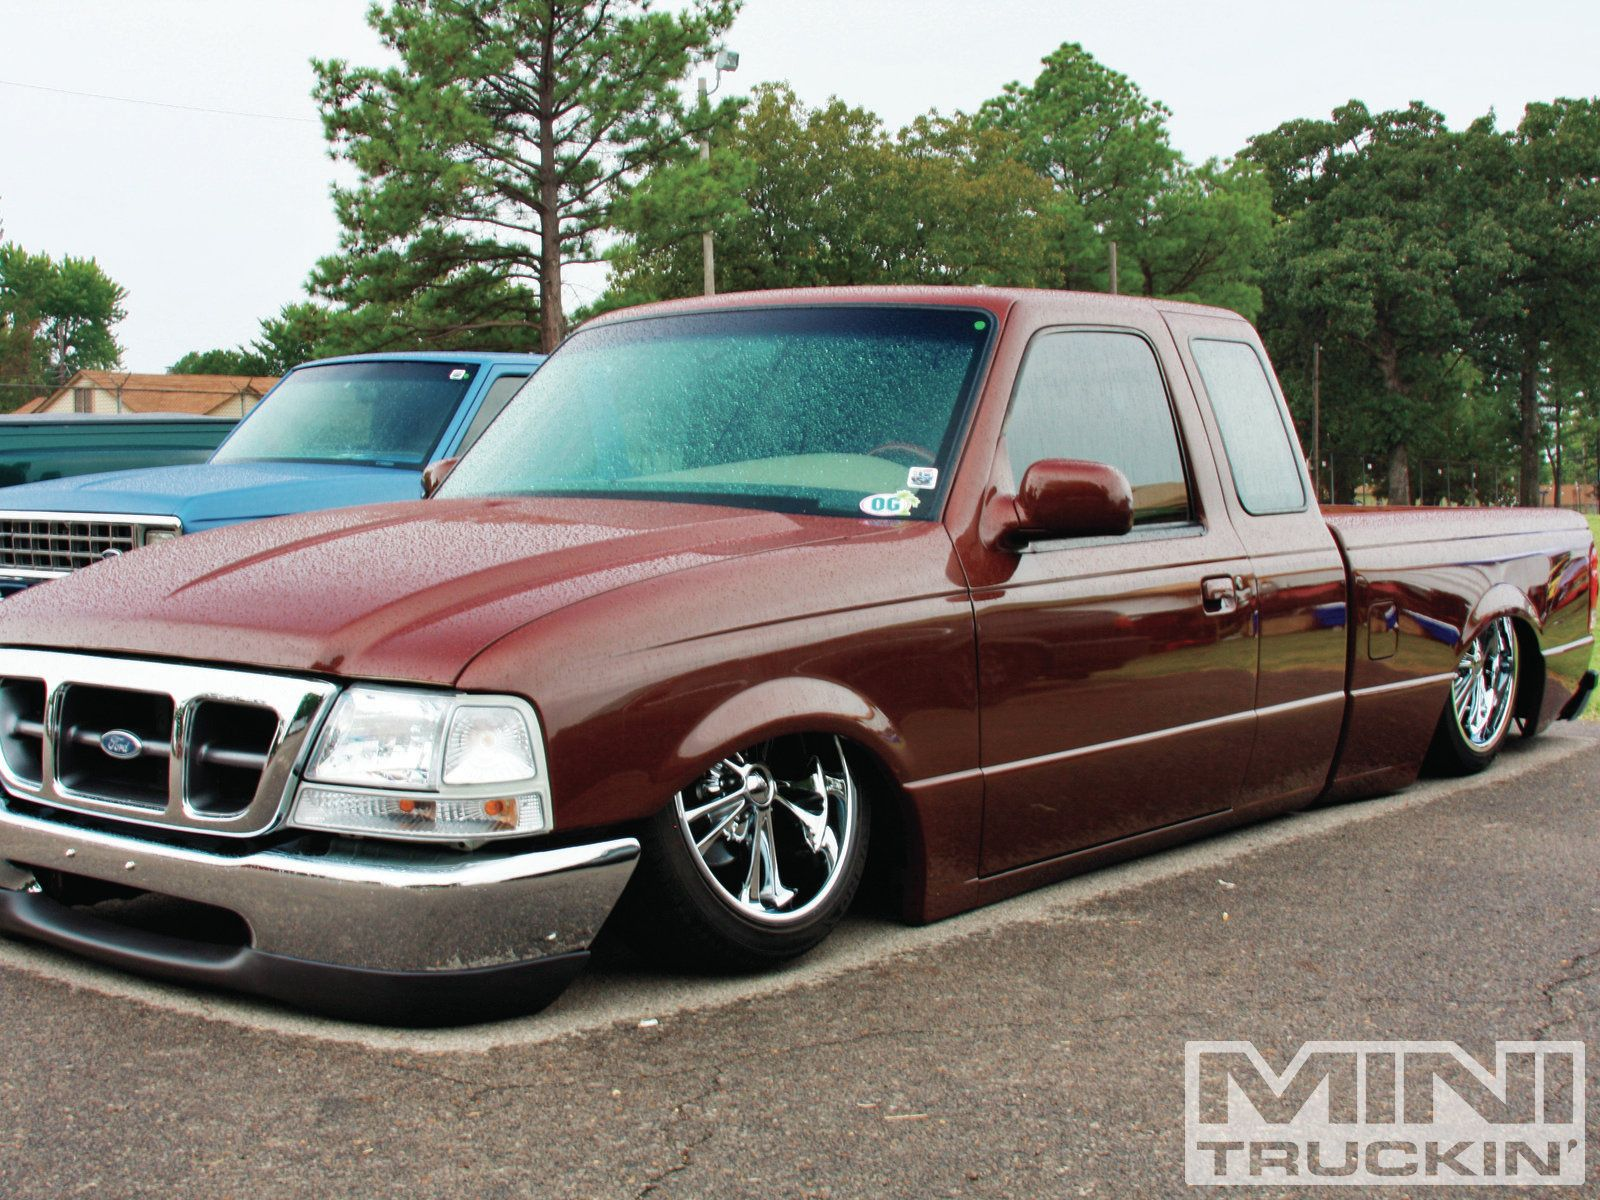 bagged rangers 1303mt 08 slamily reunion truck show. Black Bedroom Furniture Sets. Home Design Ideas